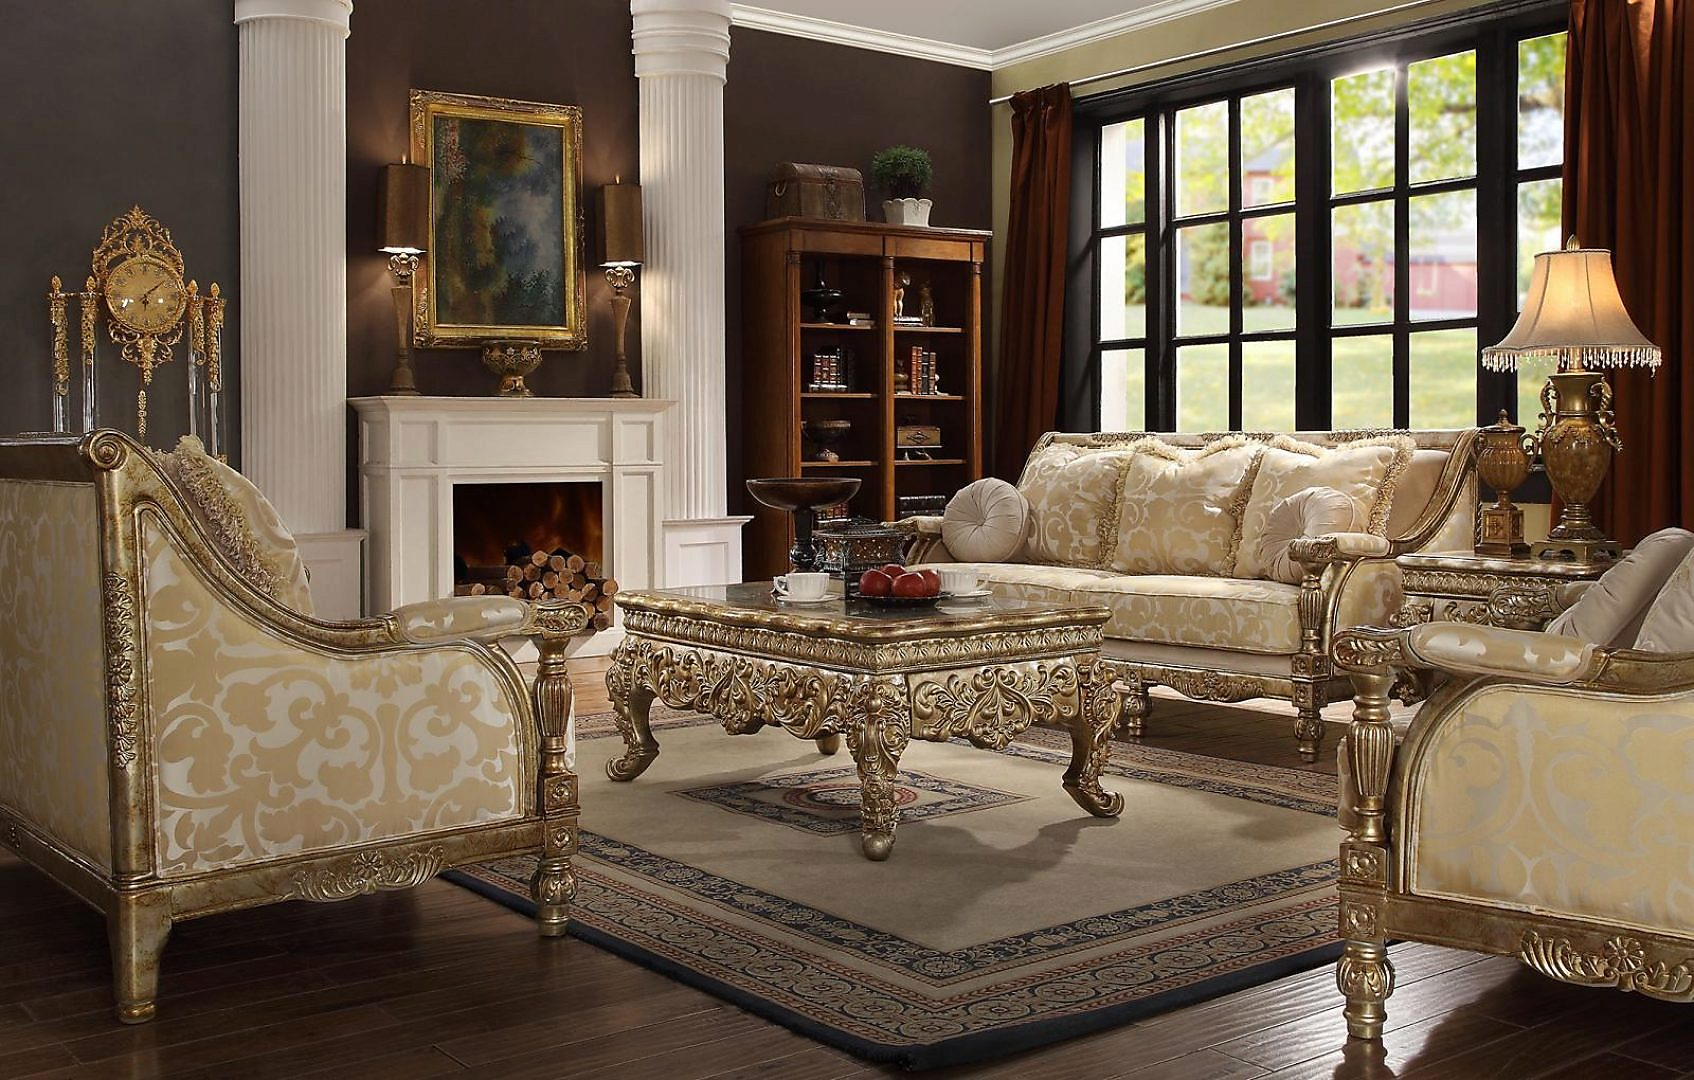 Traditional Hd-205 Sofa Loveseat Chair and Coffee Table 4Pcs by Homey Design